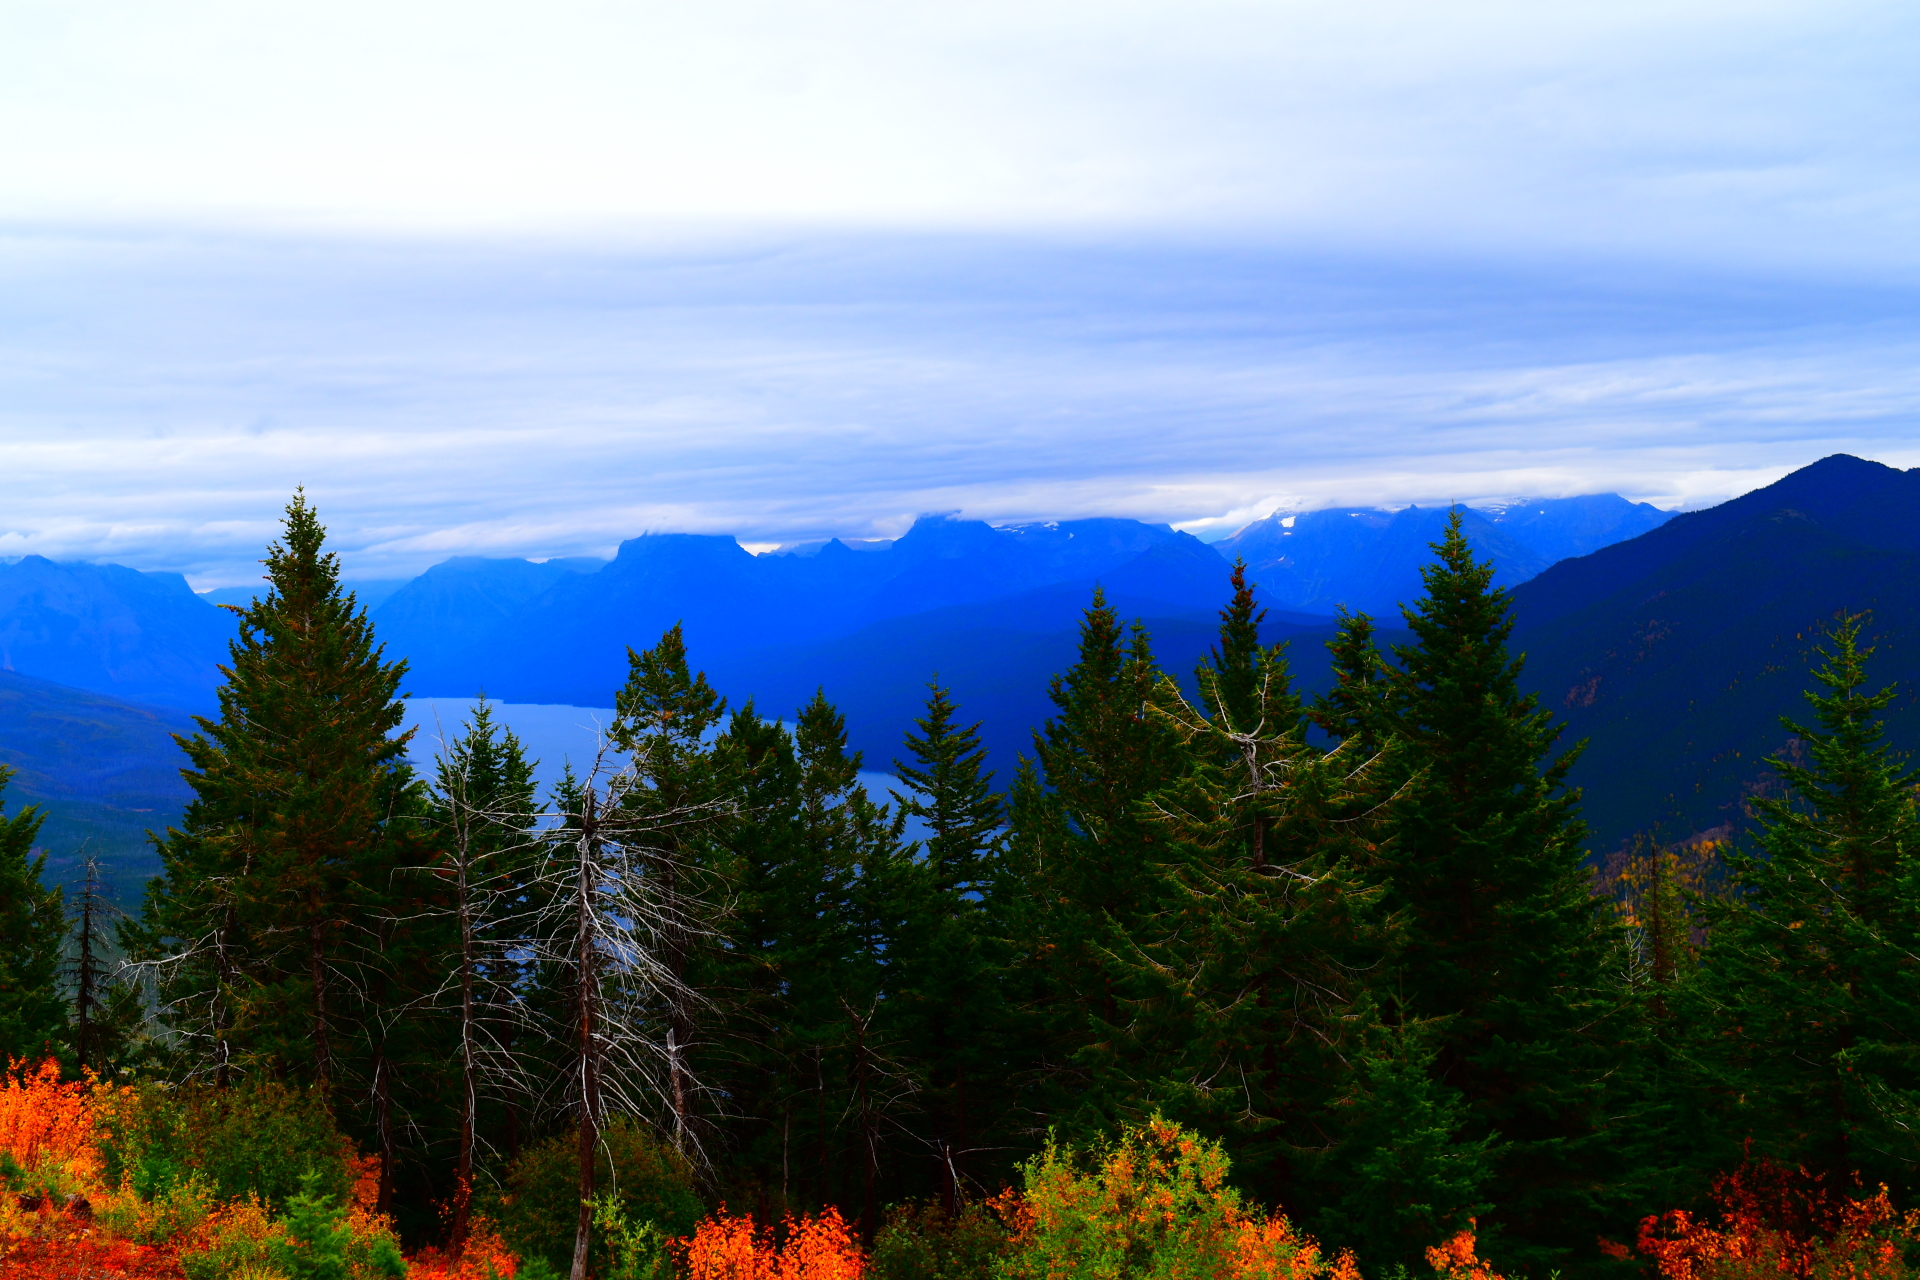 View From Apgar Lookout Trail